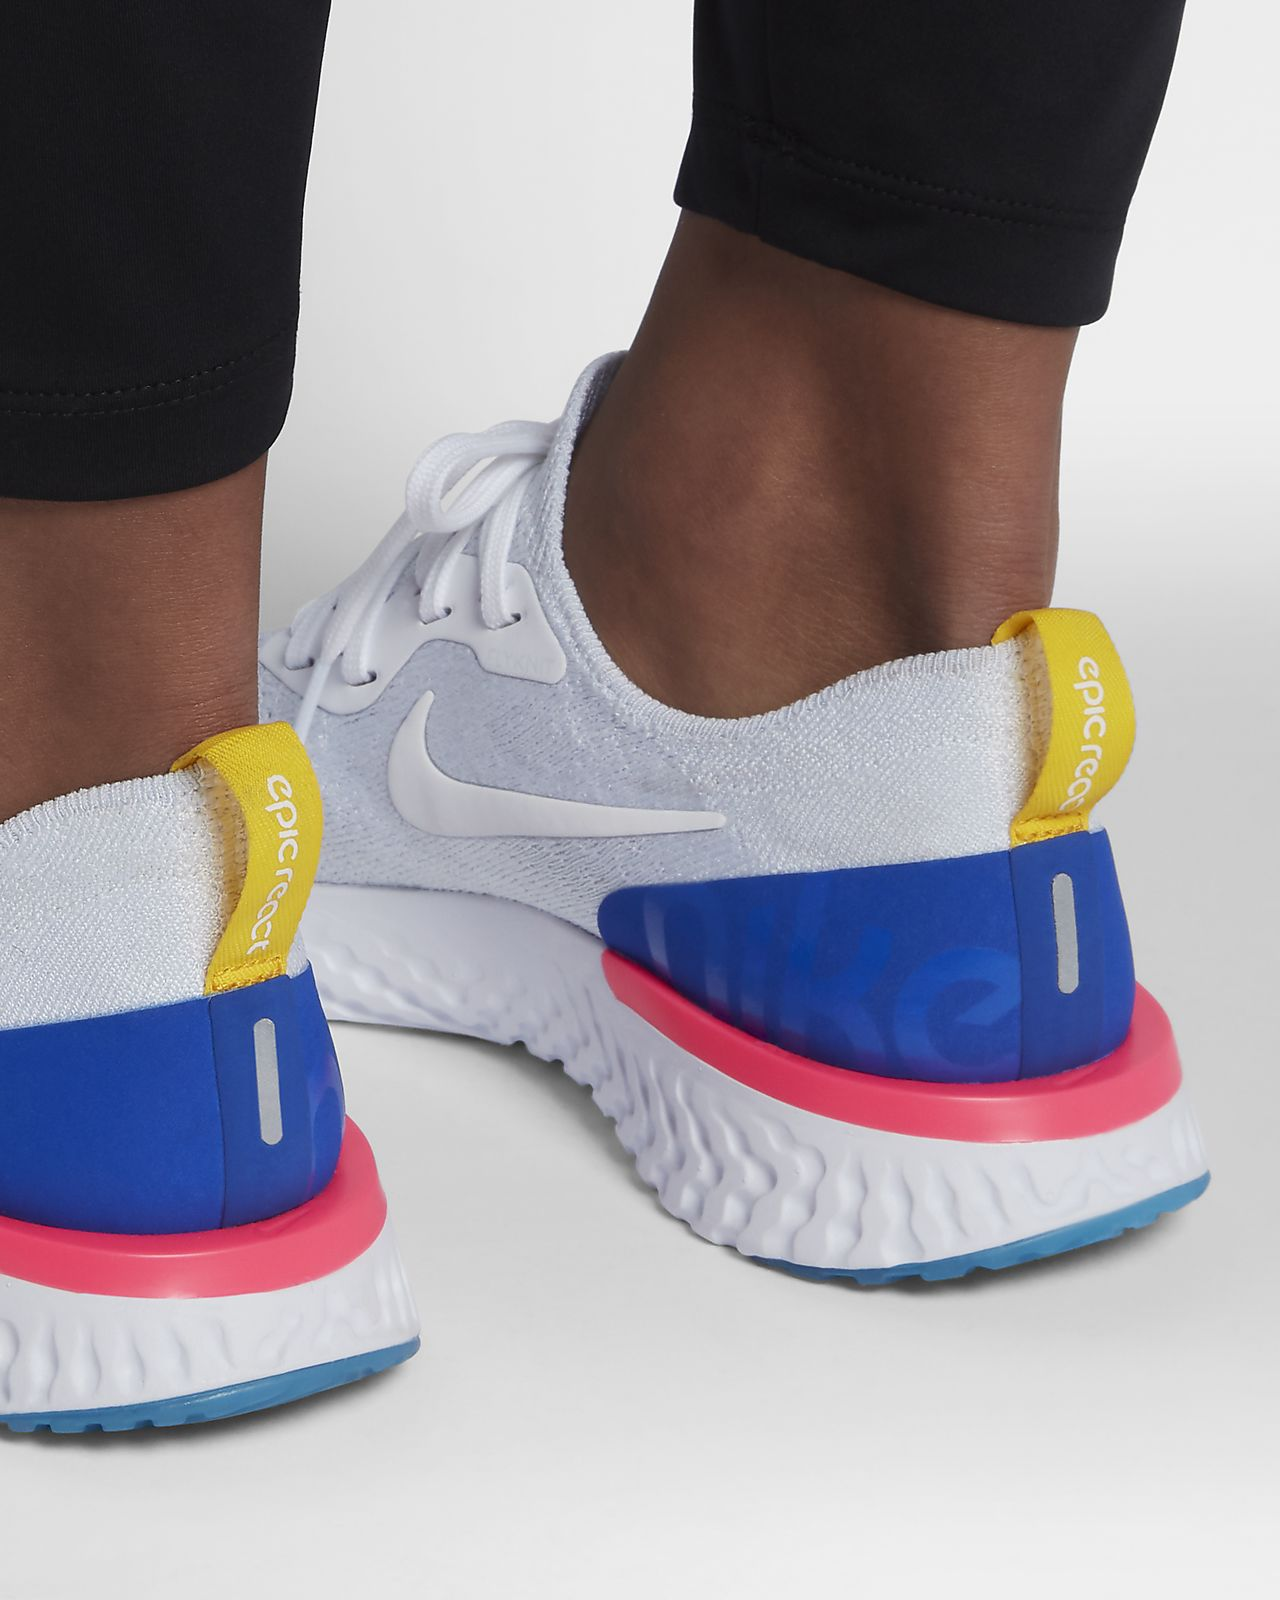 cdf6481e6644 Nike Epic React Flyknit Women s Running Shoe. Nike.com NO